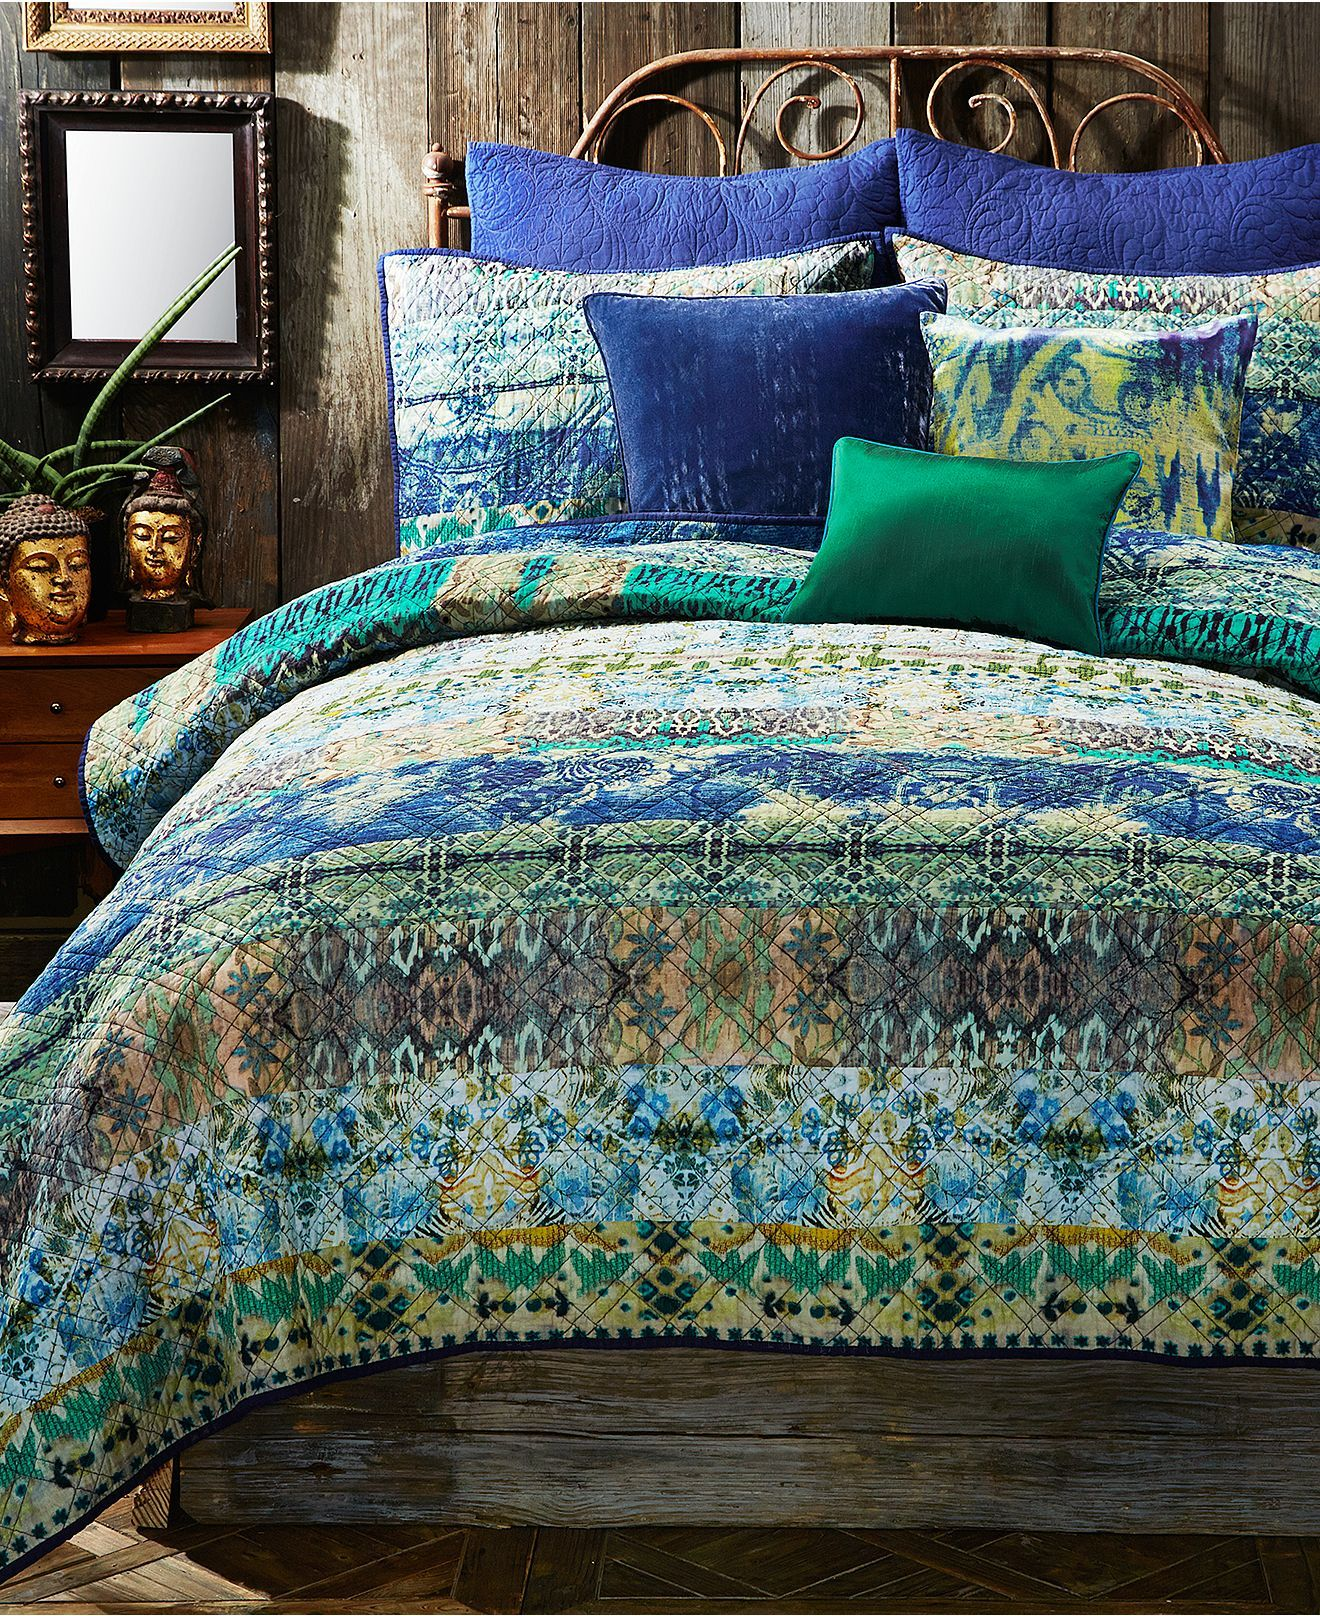 Tracy Porter Brianna Quilt Collection - Bedding Collections - Bed ... : tracy porter bronwyn quilt - Adamdwight.com